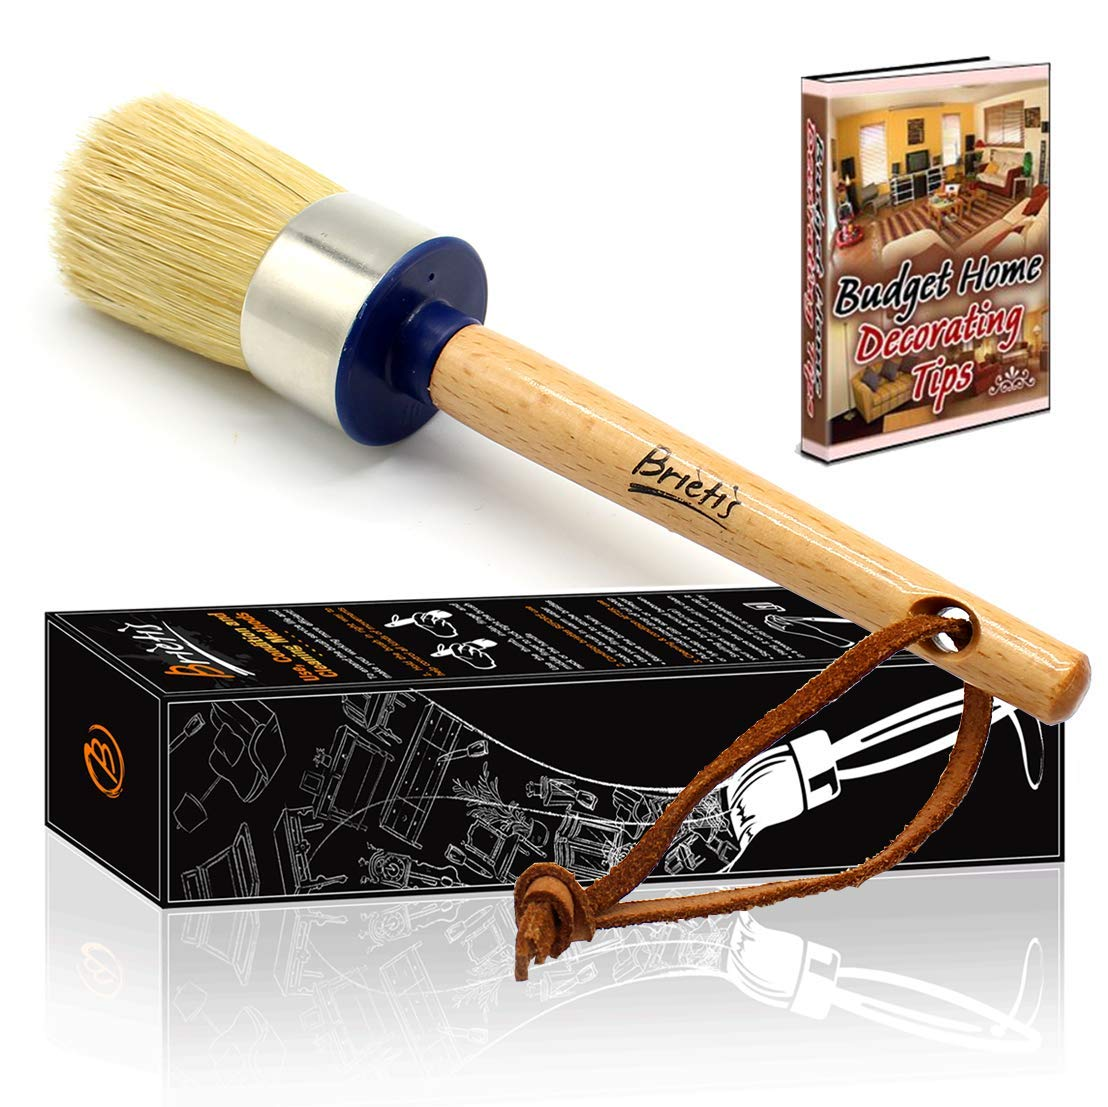 Brietis Premium Chalk & Wax Brush, Natural Boar bristles, Smooth Coverage for Furniture Painting, waxing, chalked Paint, Milk Paint, Stencils, Clear Wax | Soft, Large Round Brushes (1)